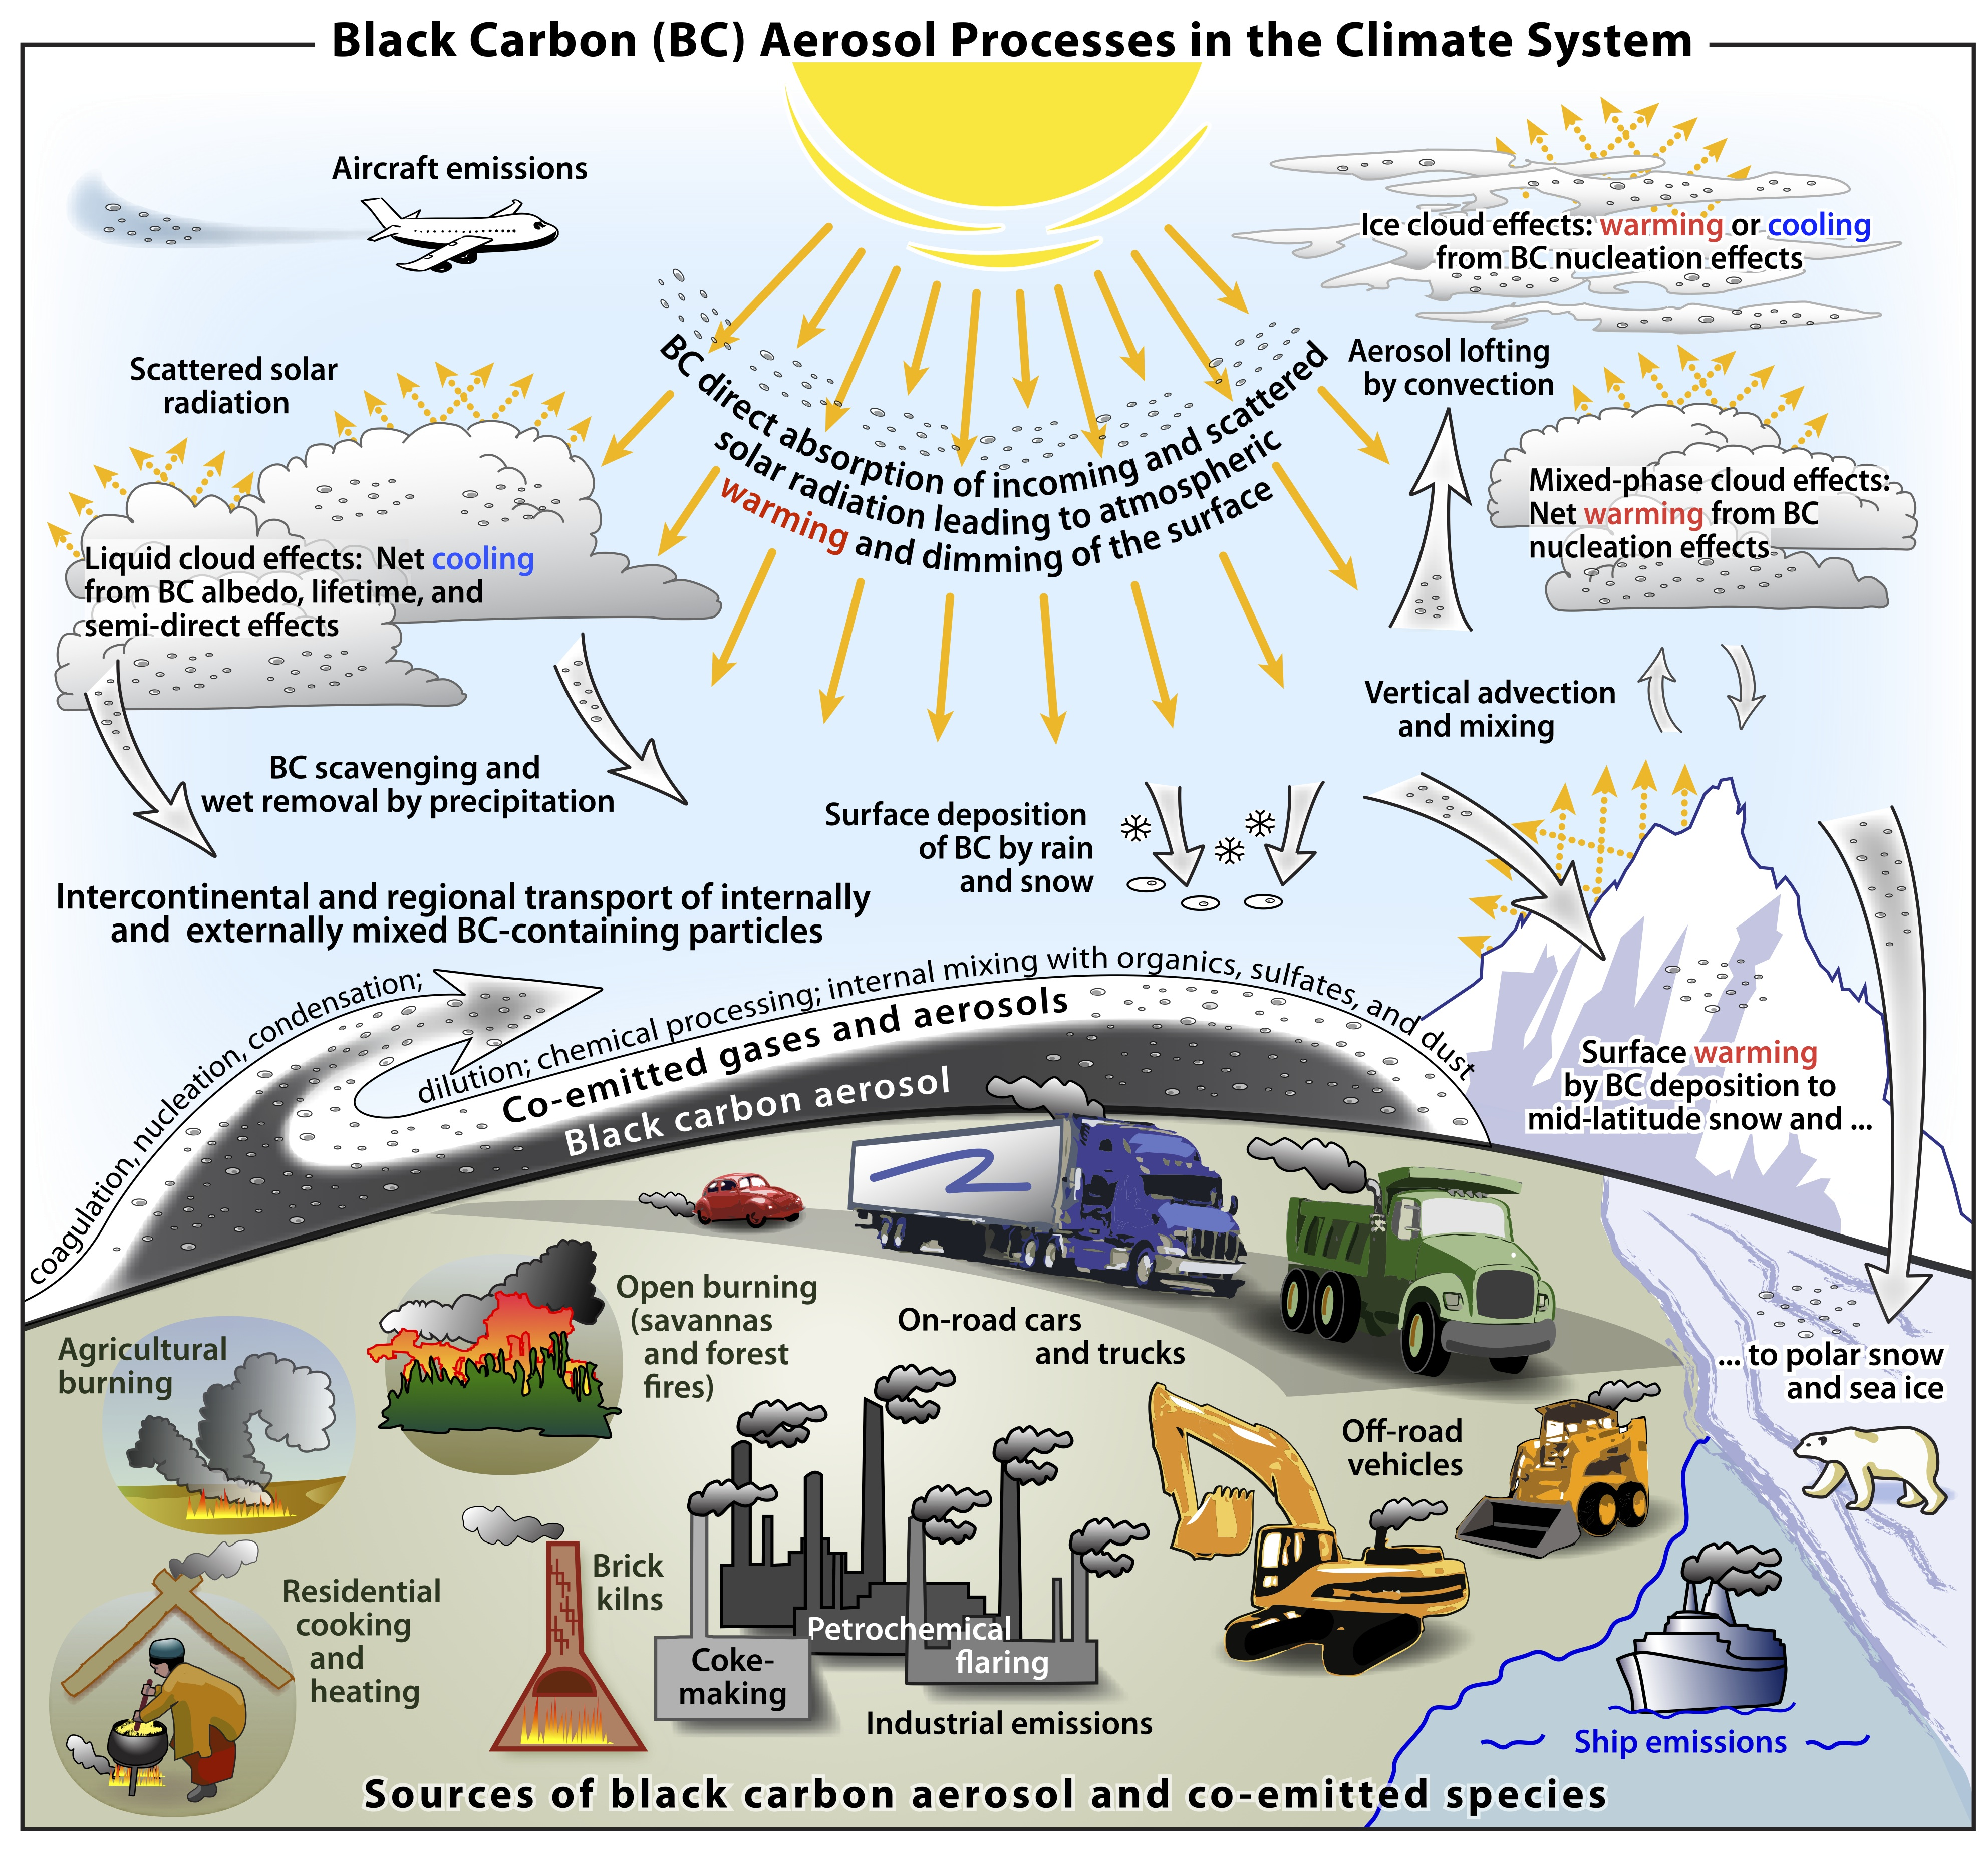 Black Carbon Larger Cause Of Climate Change Than